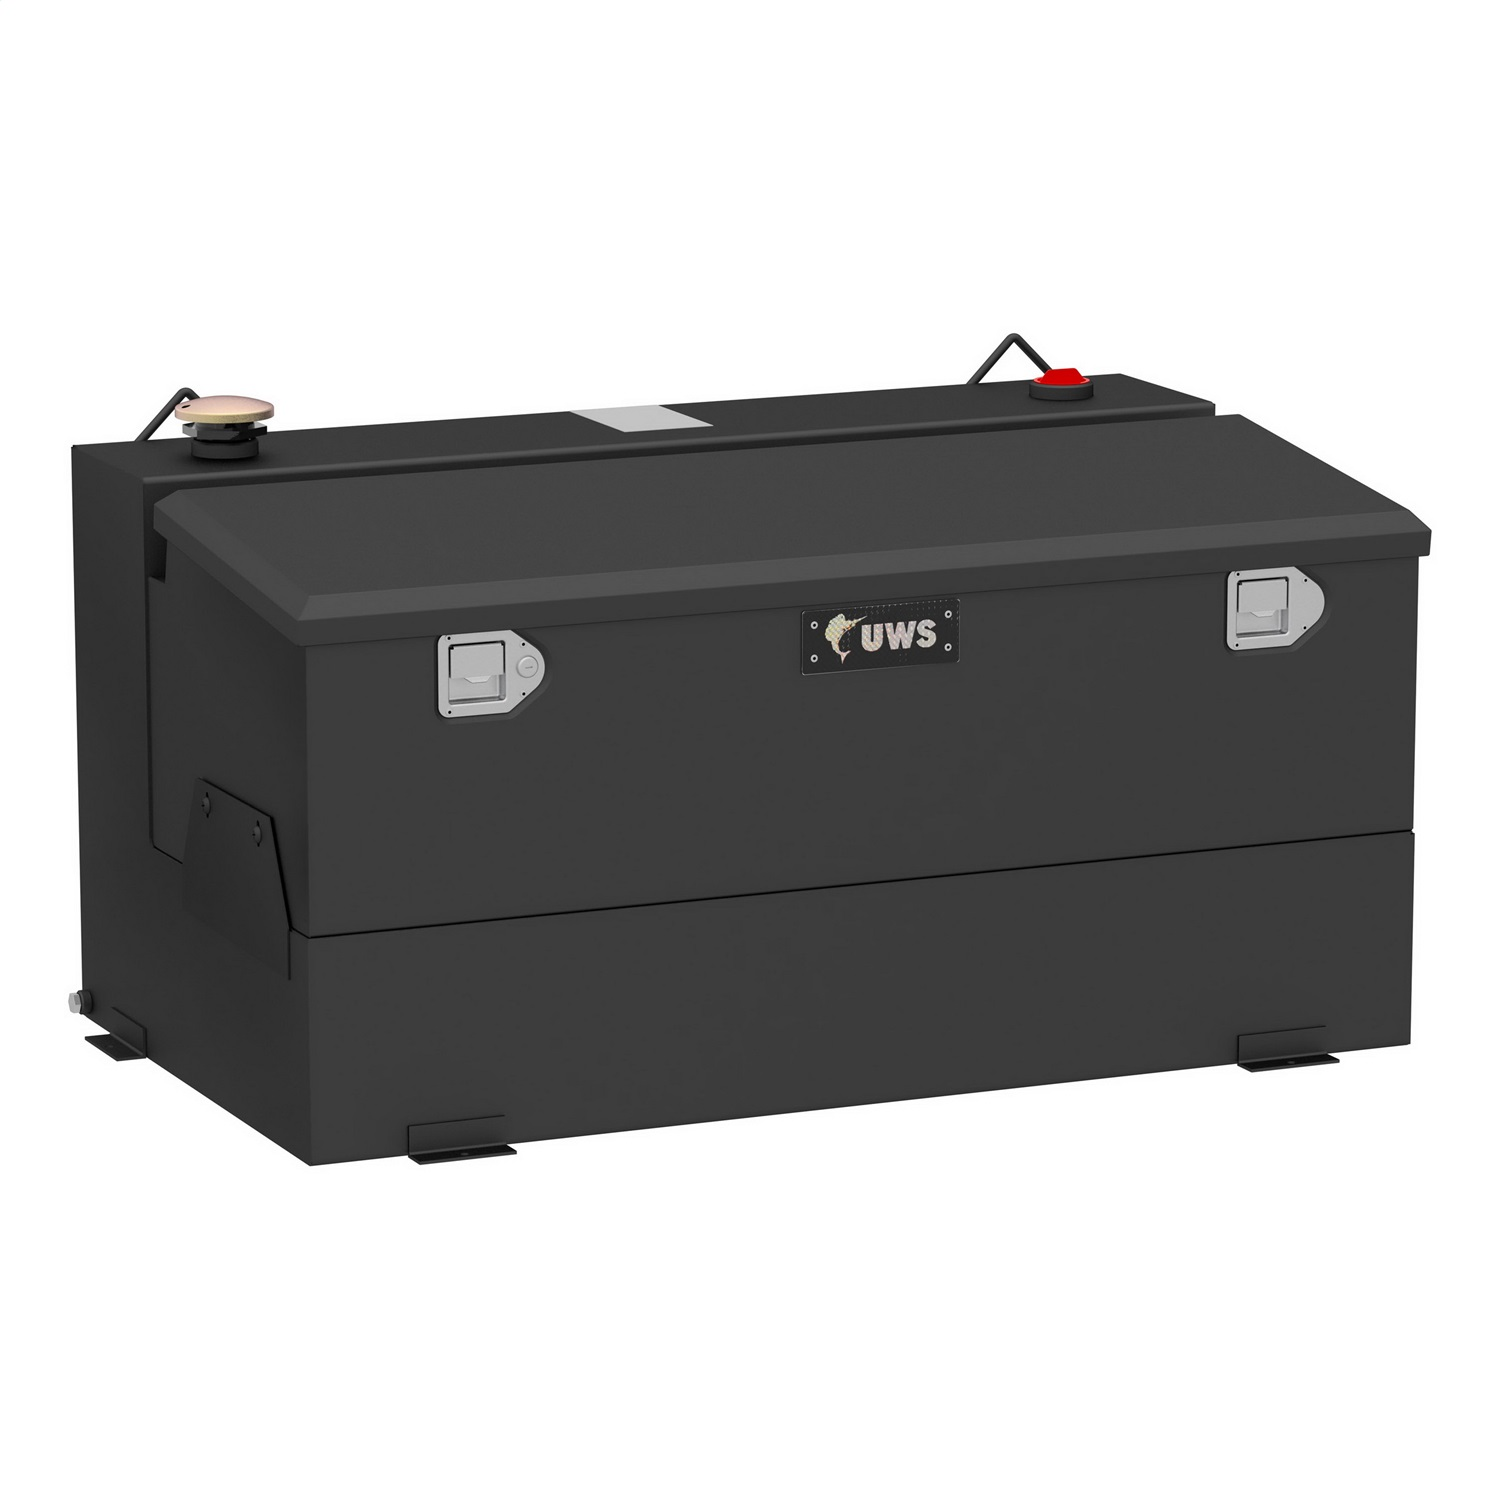 Combination Liquid Transfer Tank/Tool Box, 75 Gallon, Non Flammable Liquid, Matte Black, Steel